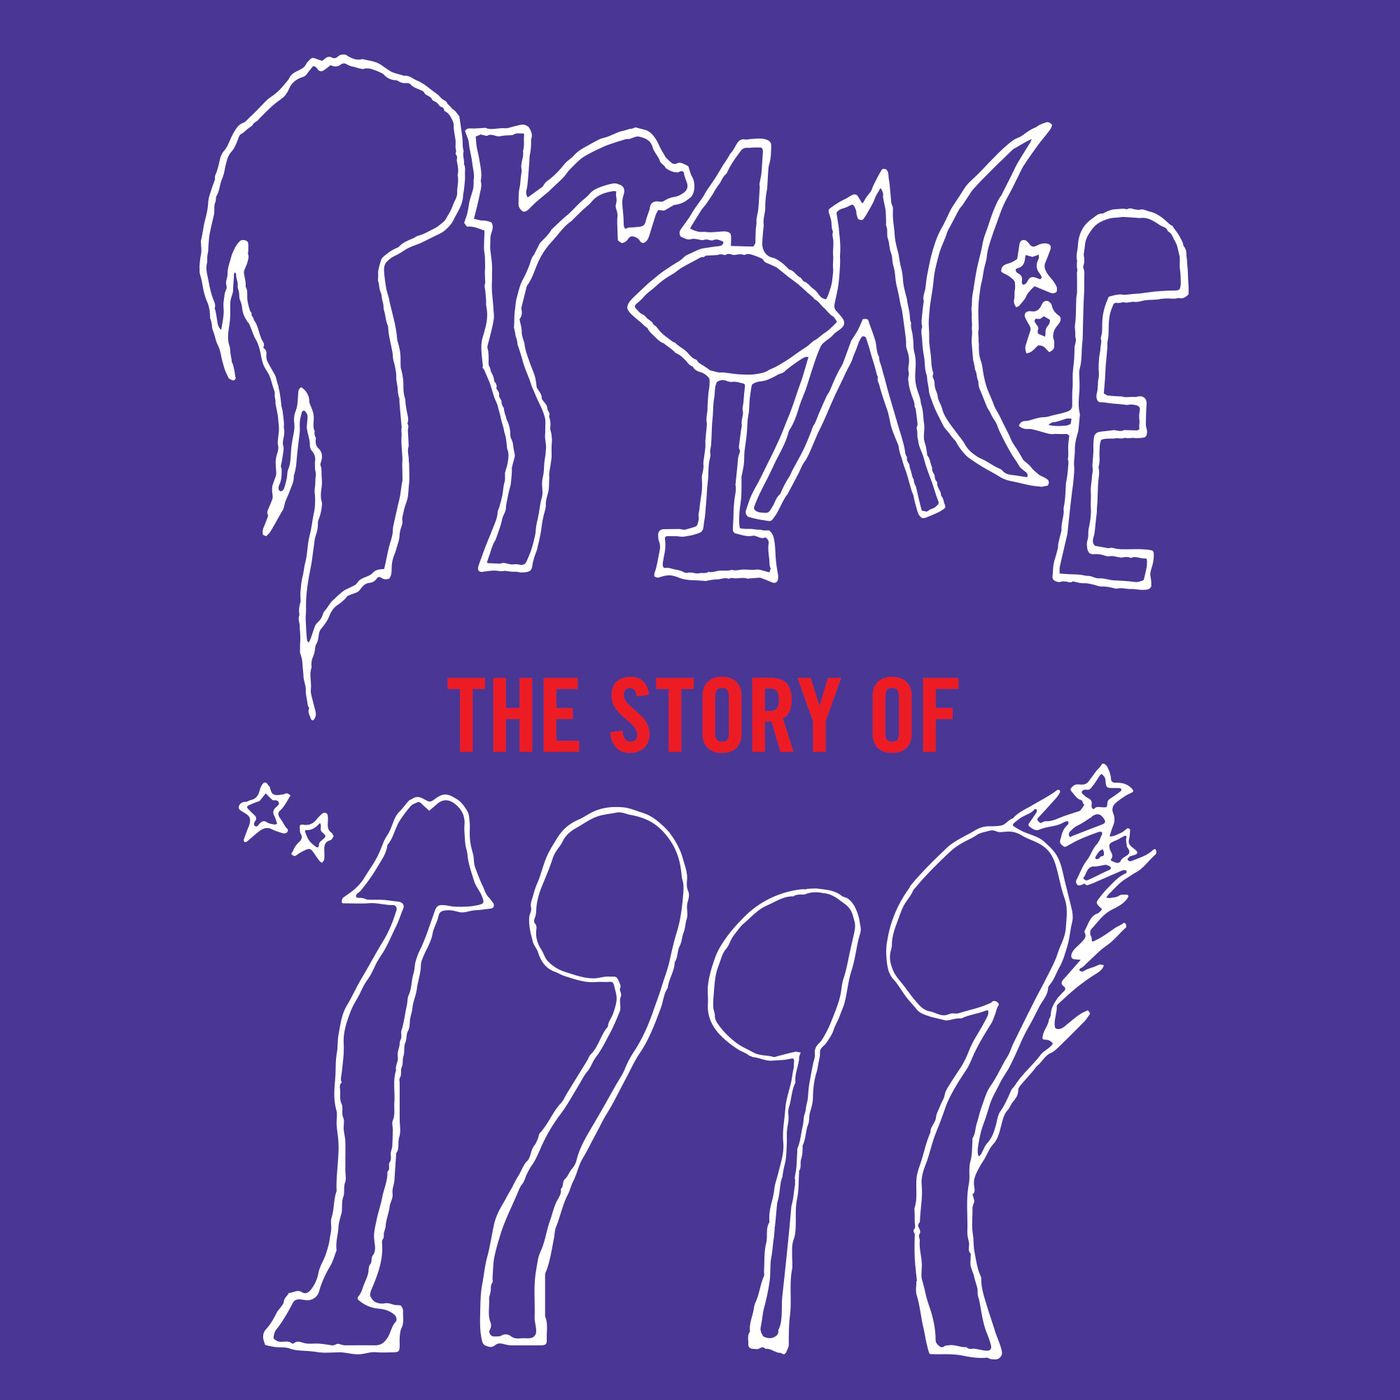 Prince: The Story of 1999, Episode 1: My Mind Says Prepare to Fight